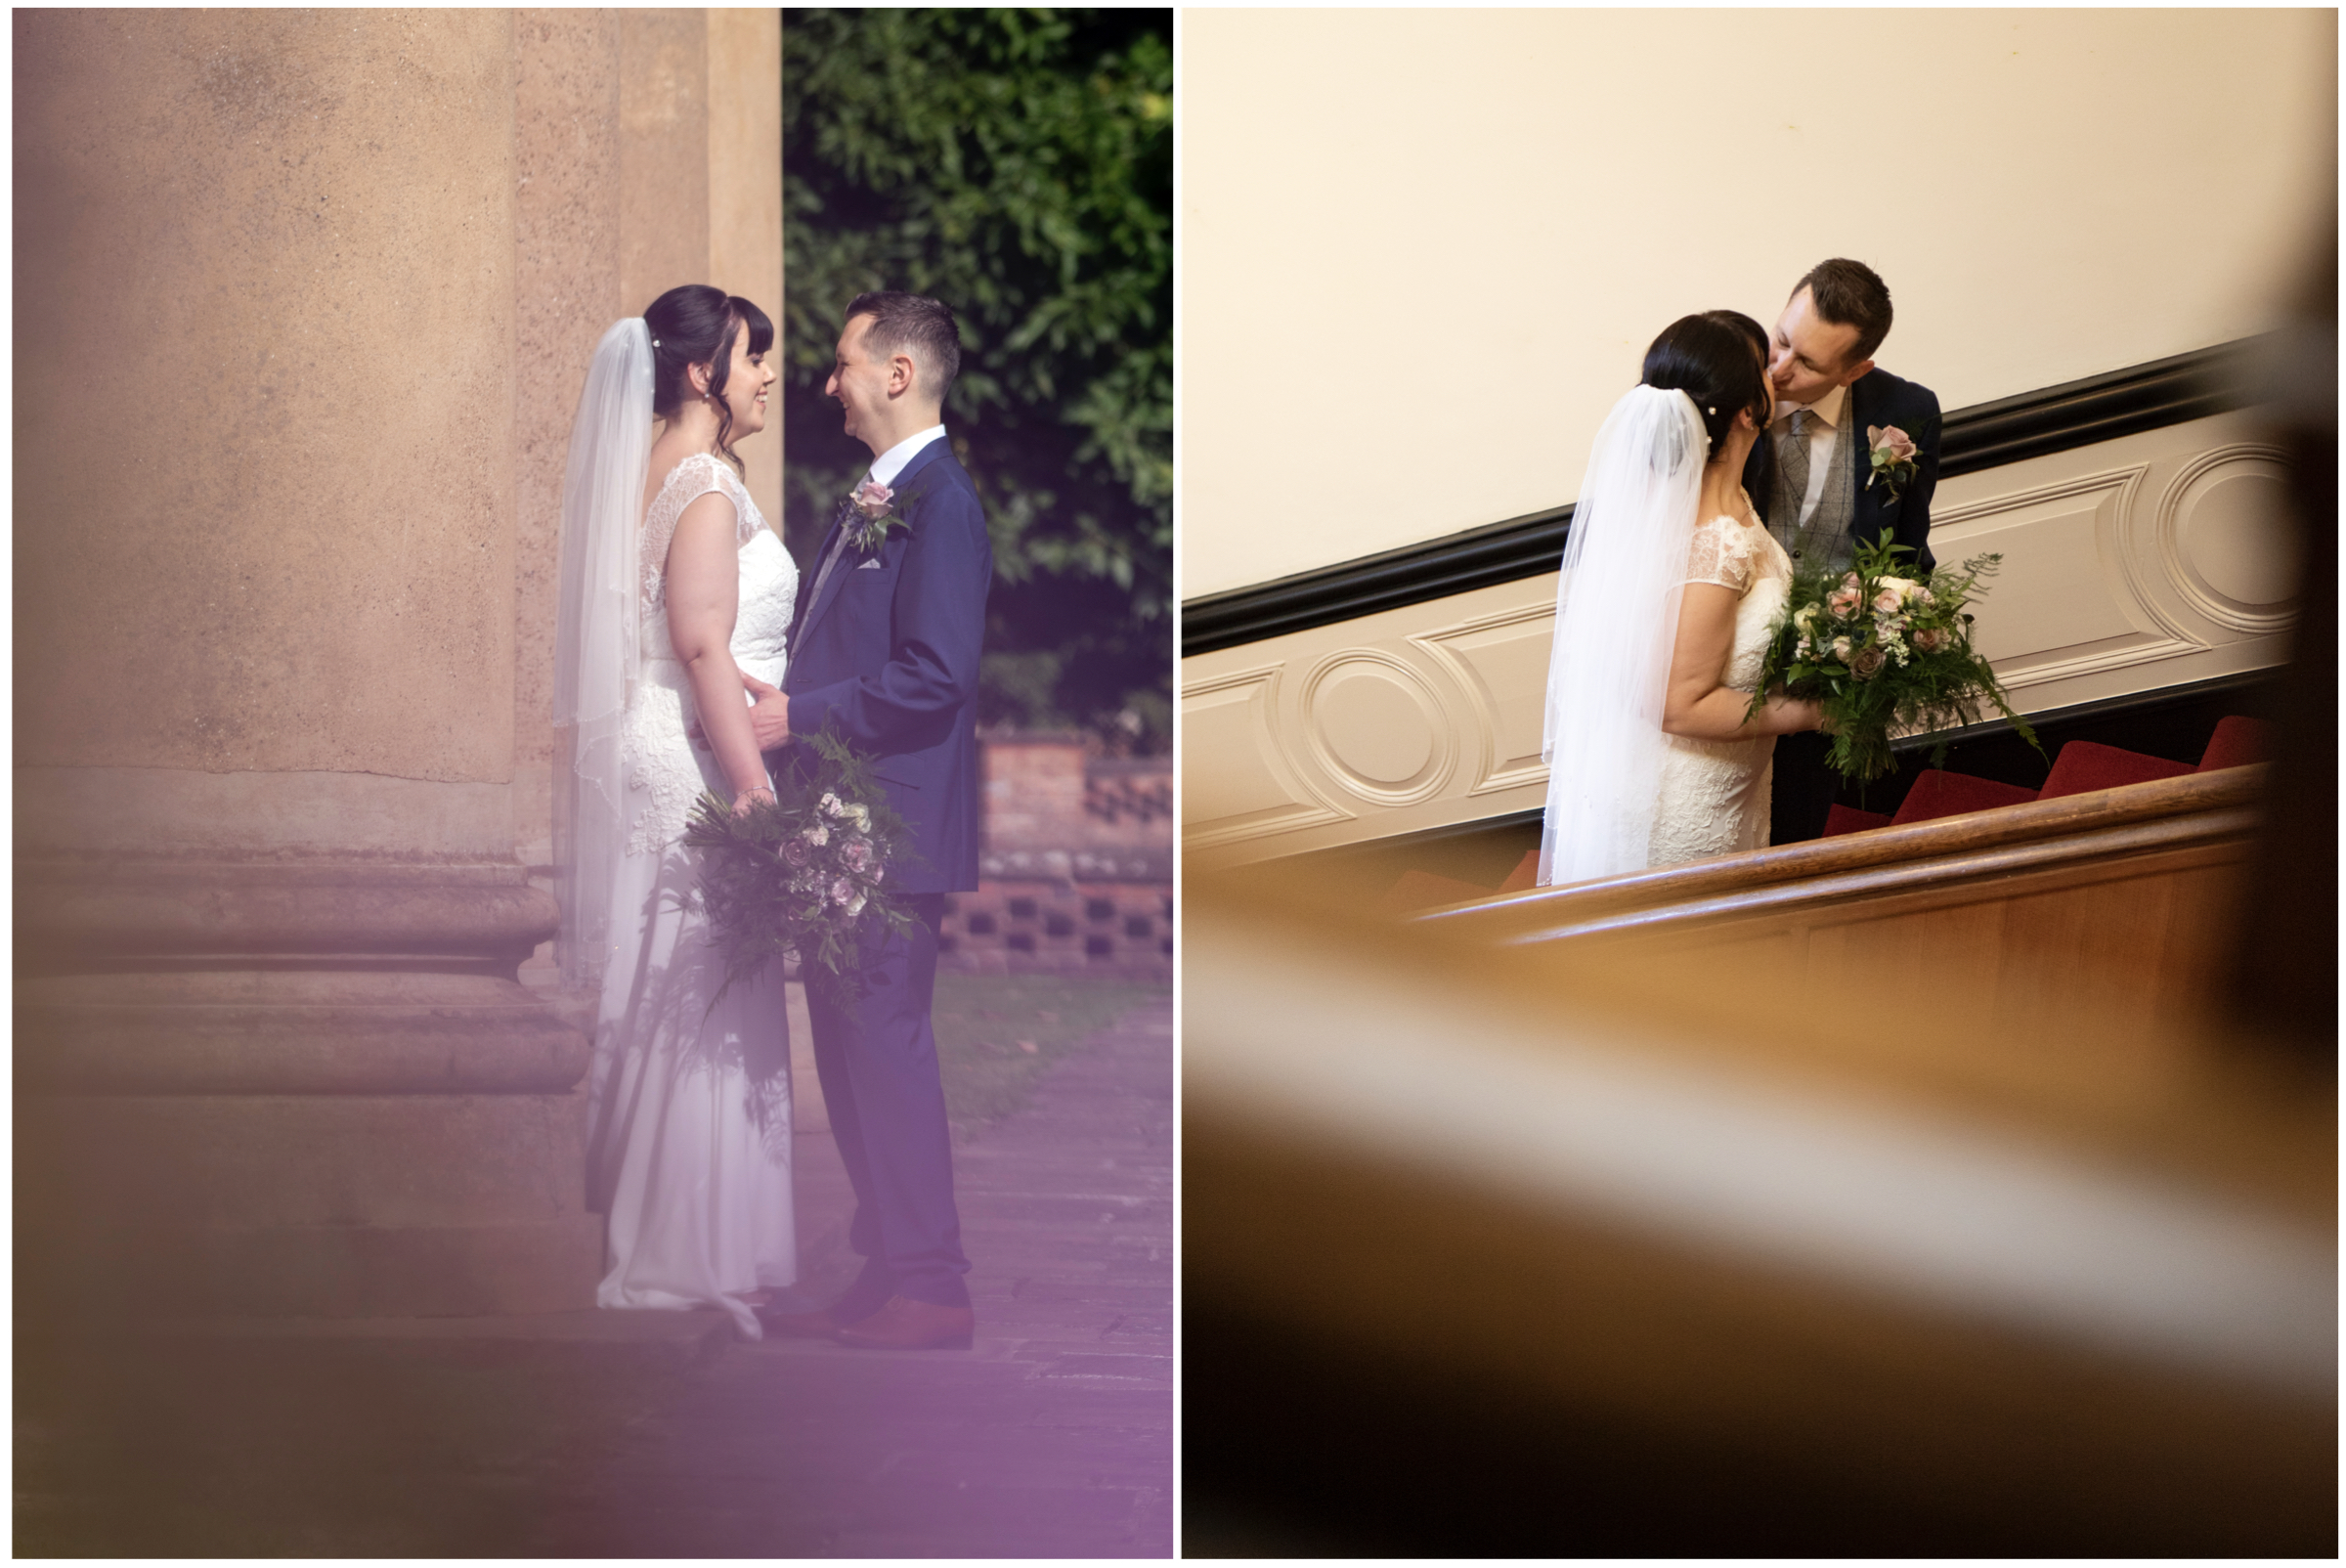 himley wedding photographer